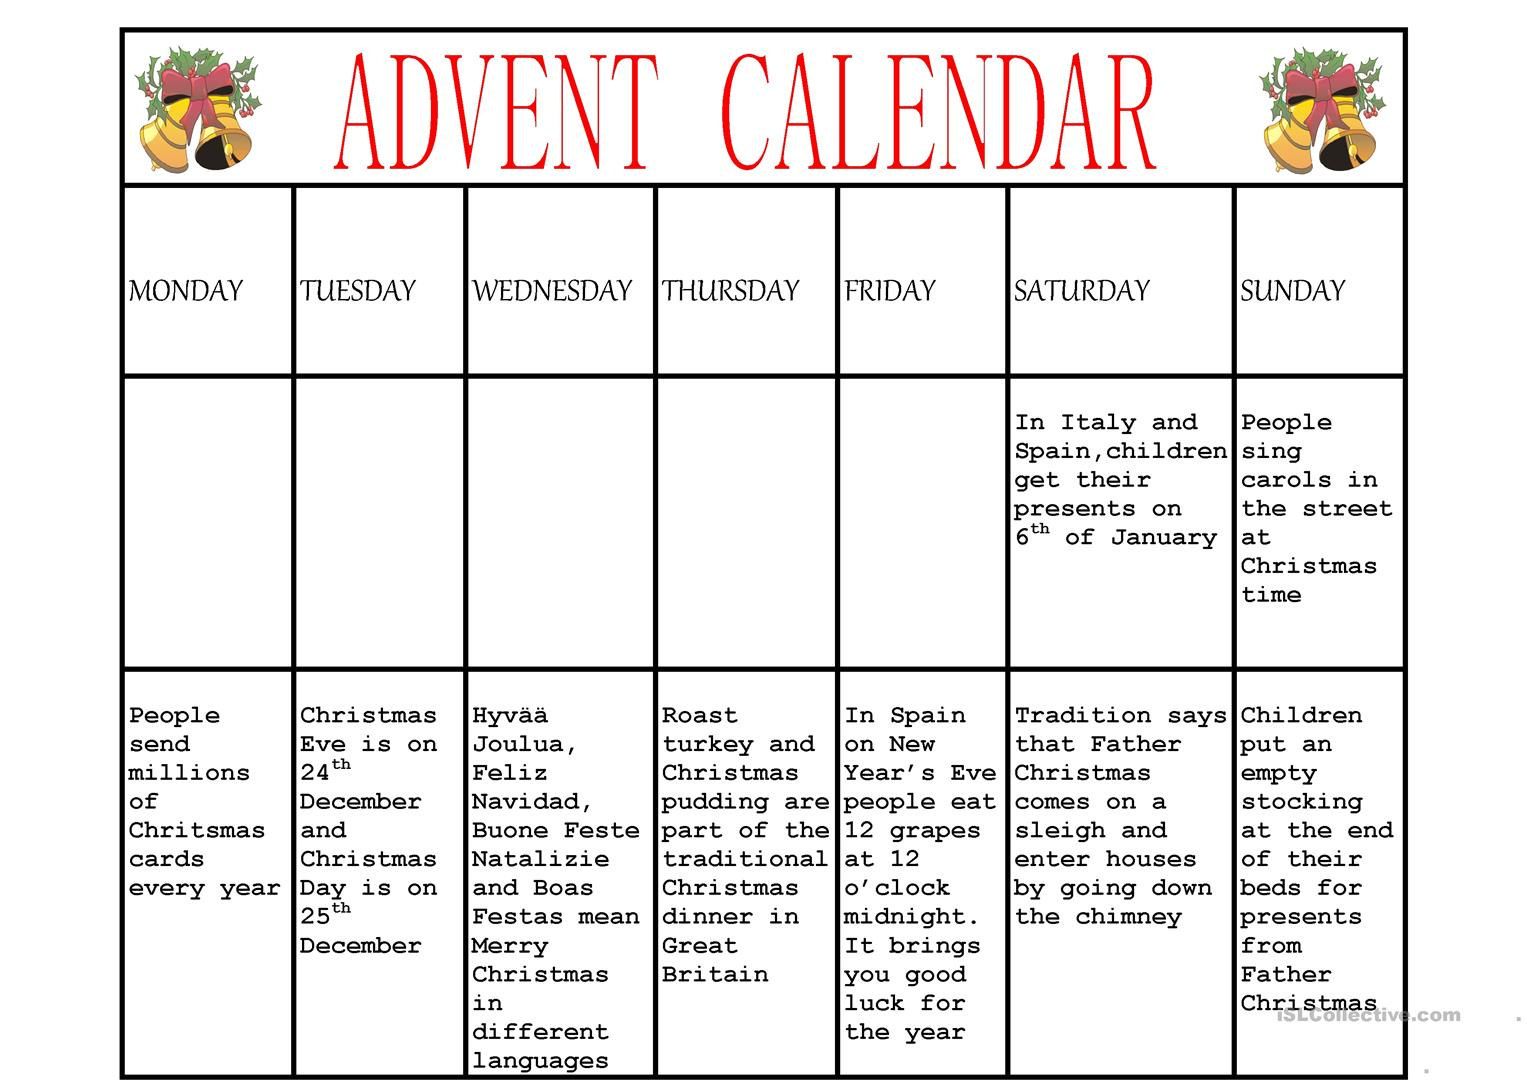 Advent Calendar Worksheet - Free Esl Printable Worksheets Made | Advent Printable Worksheets